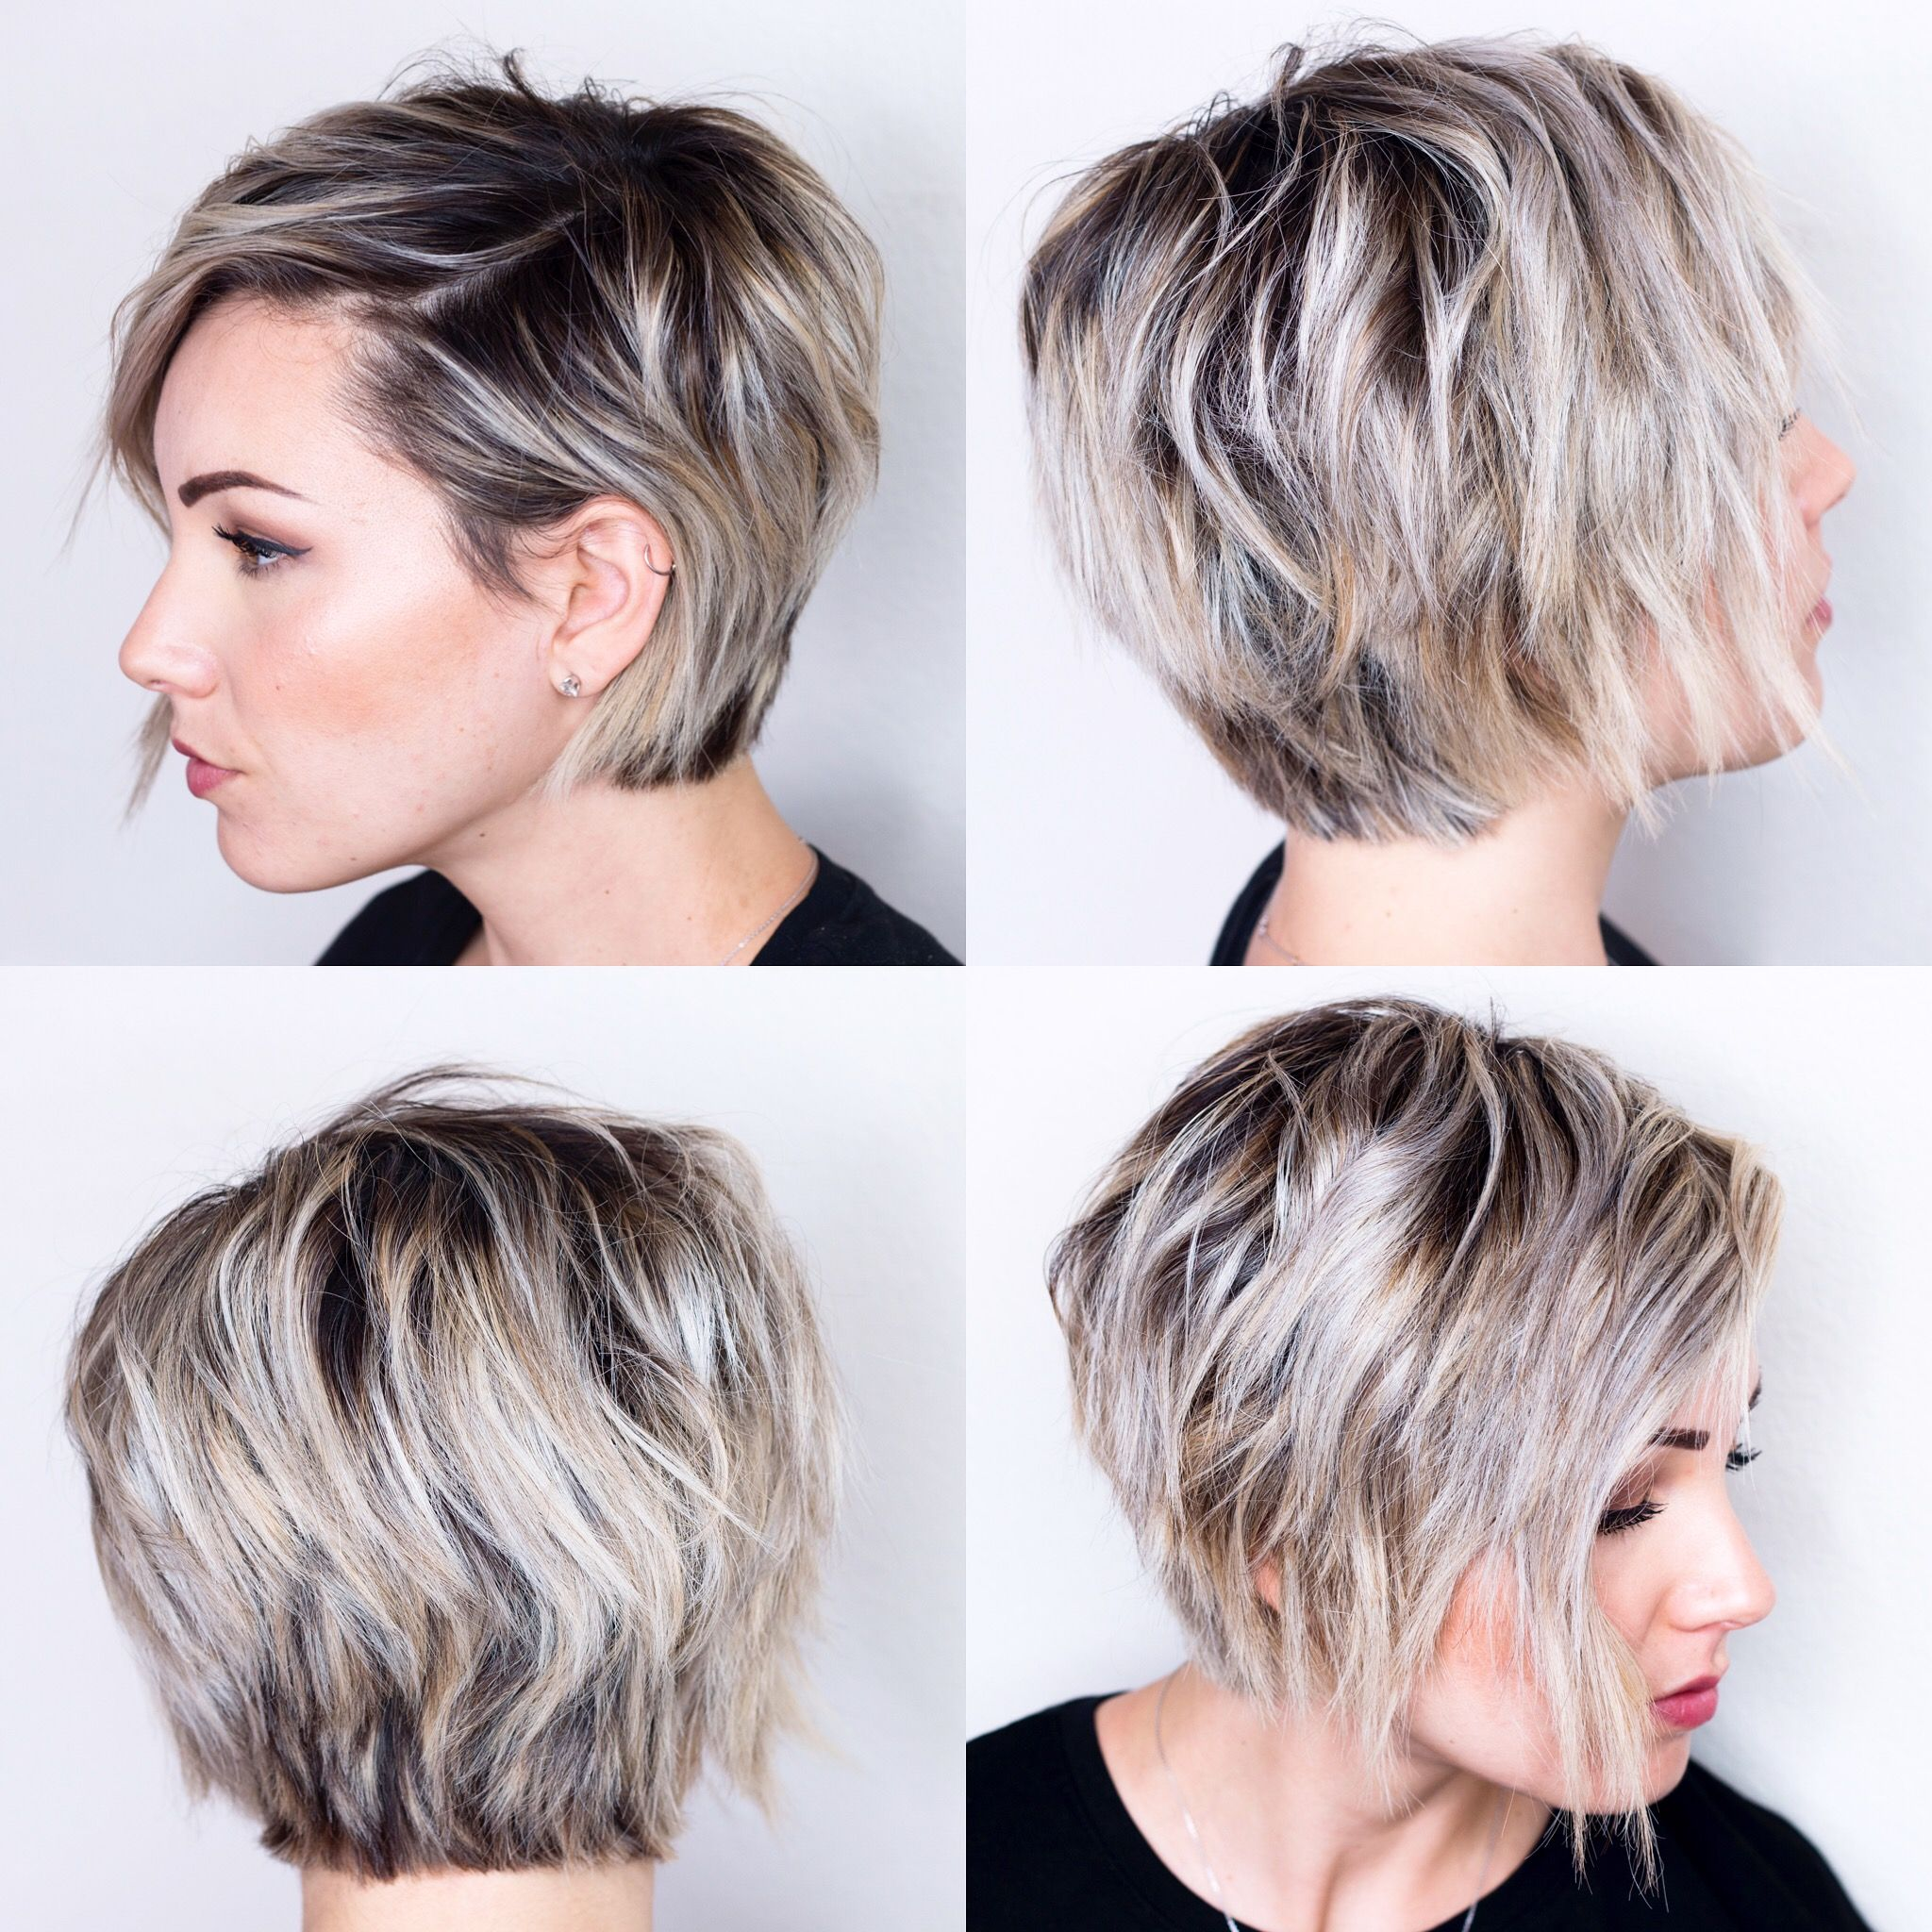 360 view of short hair | h a i r | pinterest | short hair, shorts